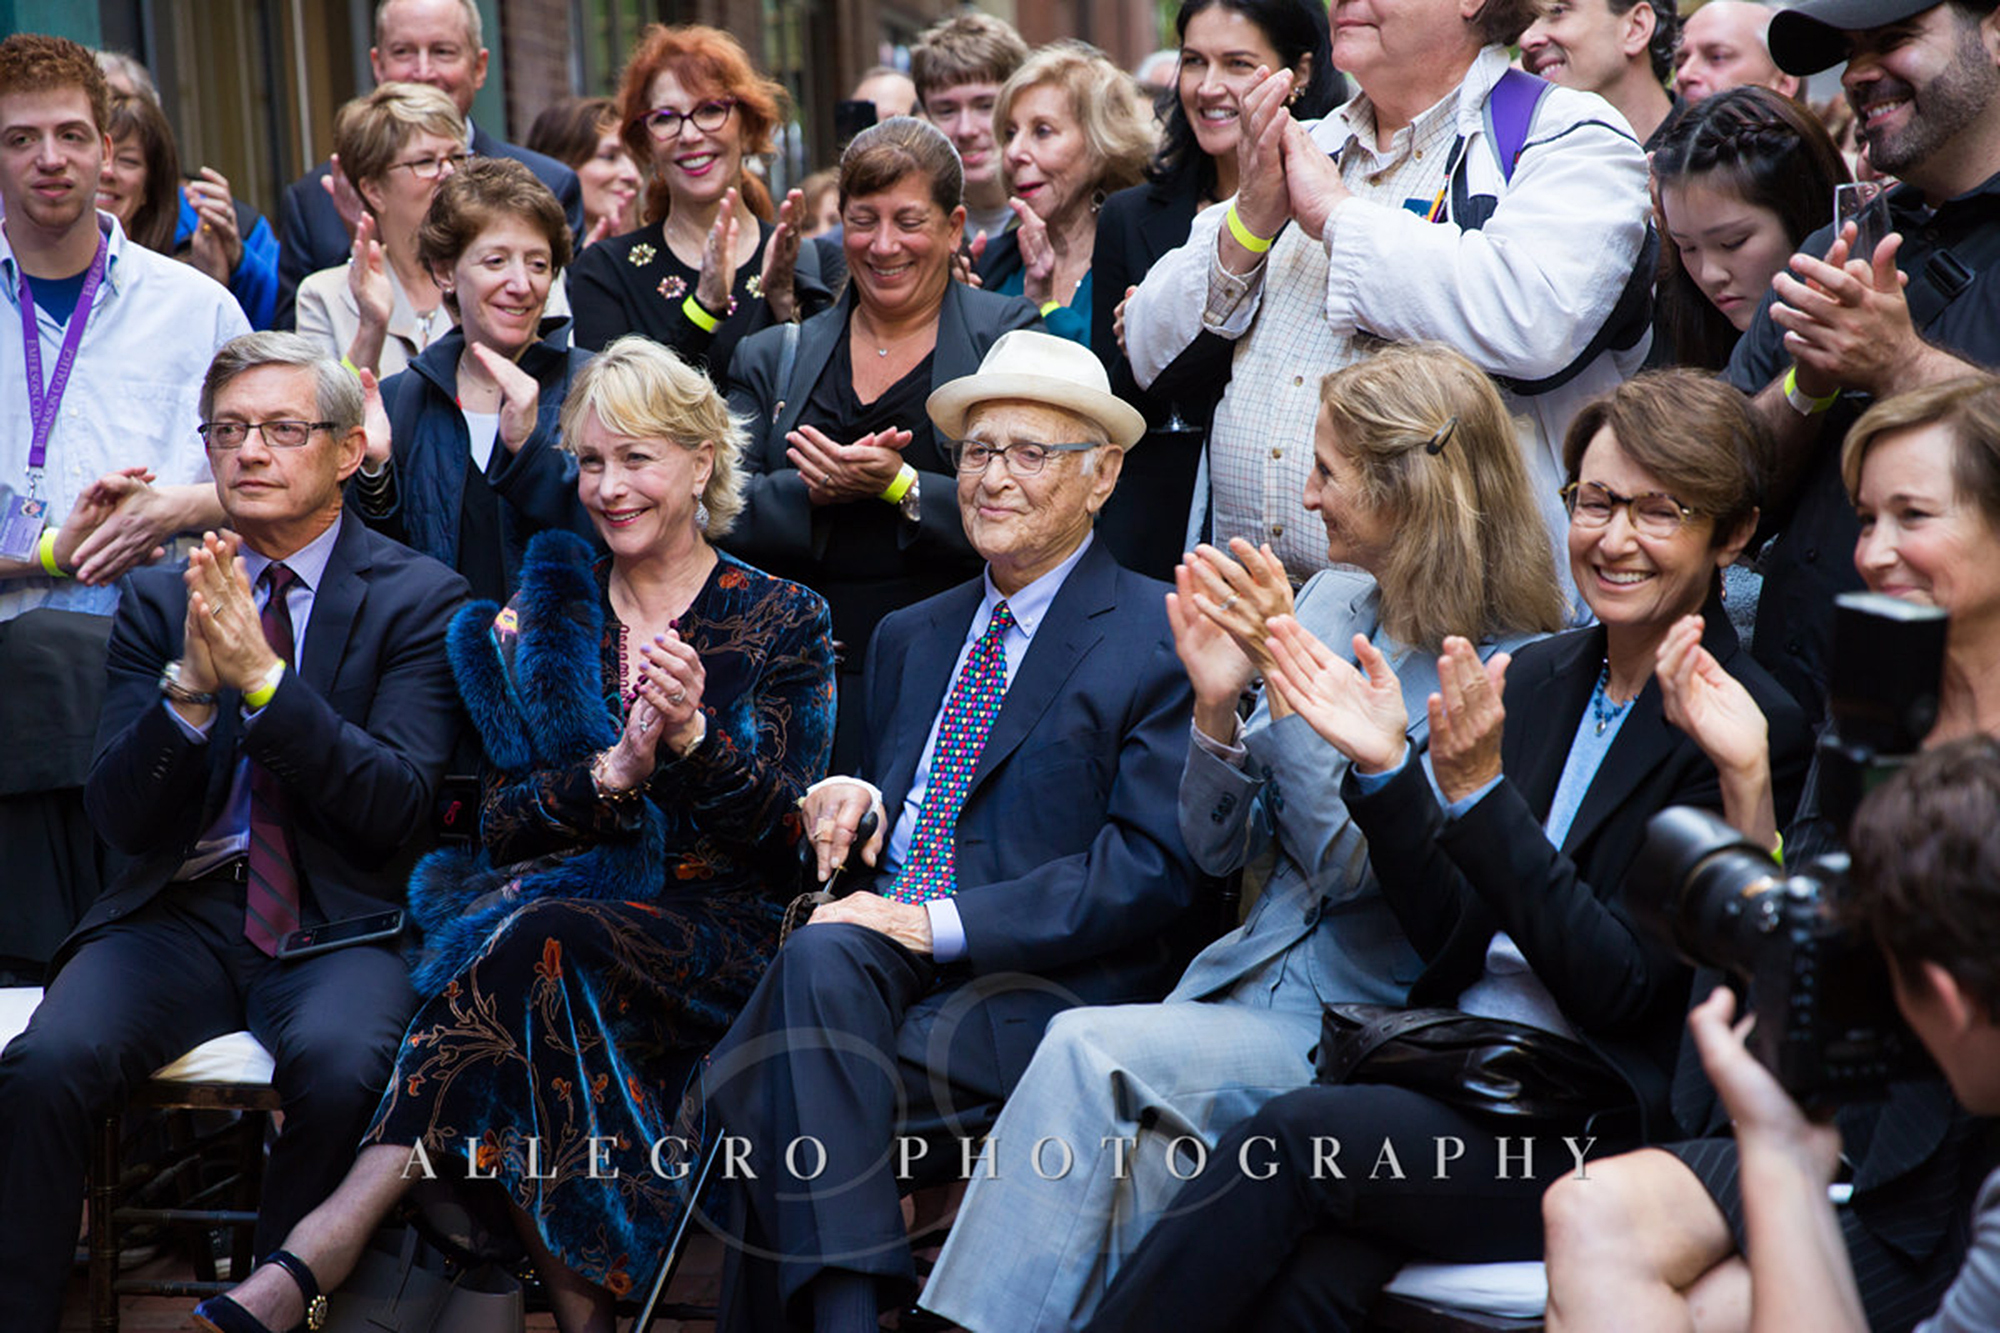 07_Emerson Event Norman Lear_AE Events.jpg